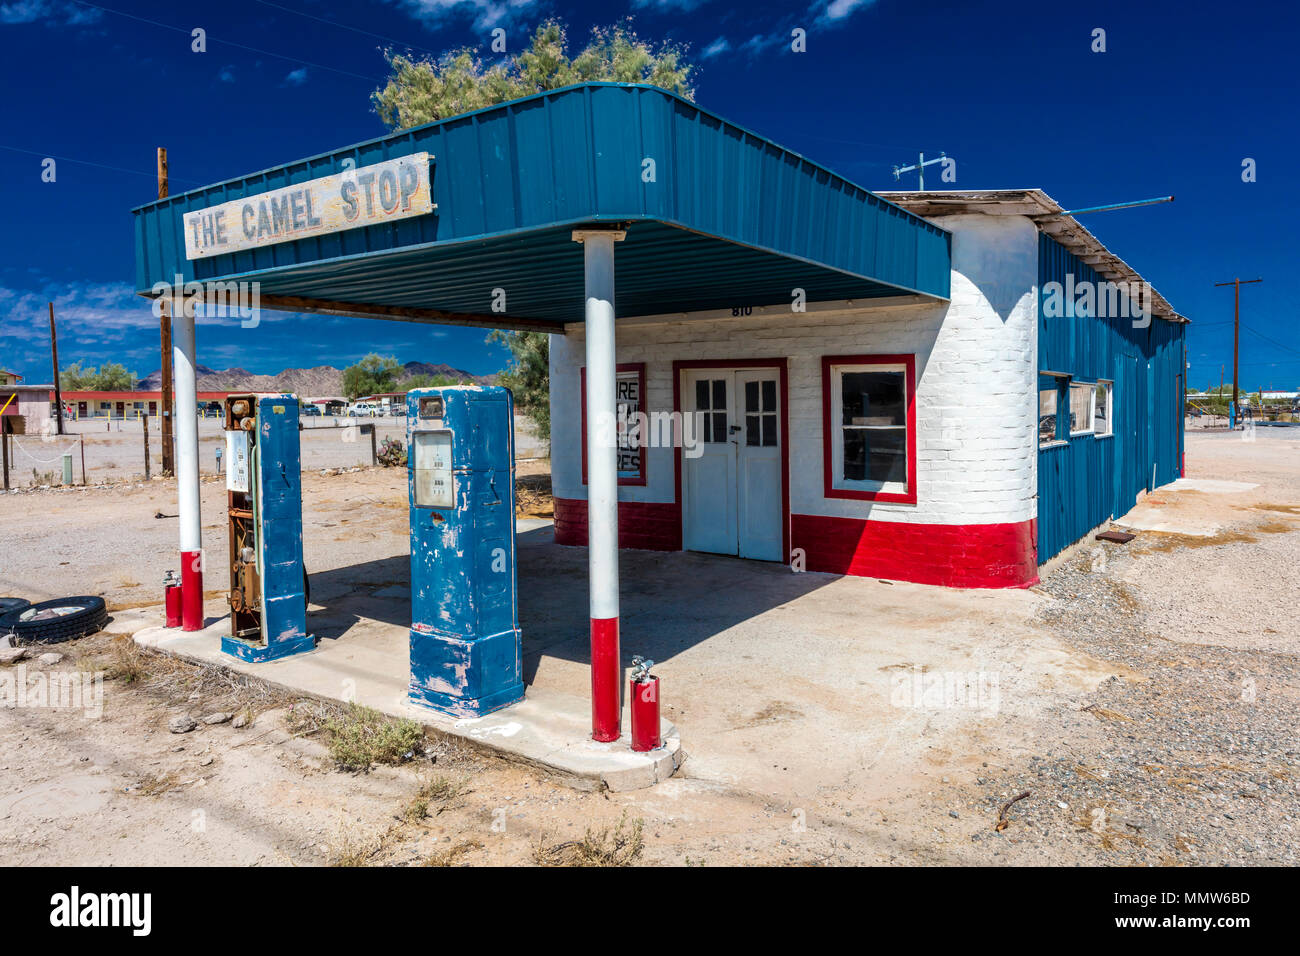 Deserted Garage and gas station in American Southwest that is a 'Camel Stop', Quartzsite, Arizona - Stock Image